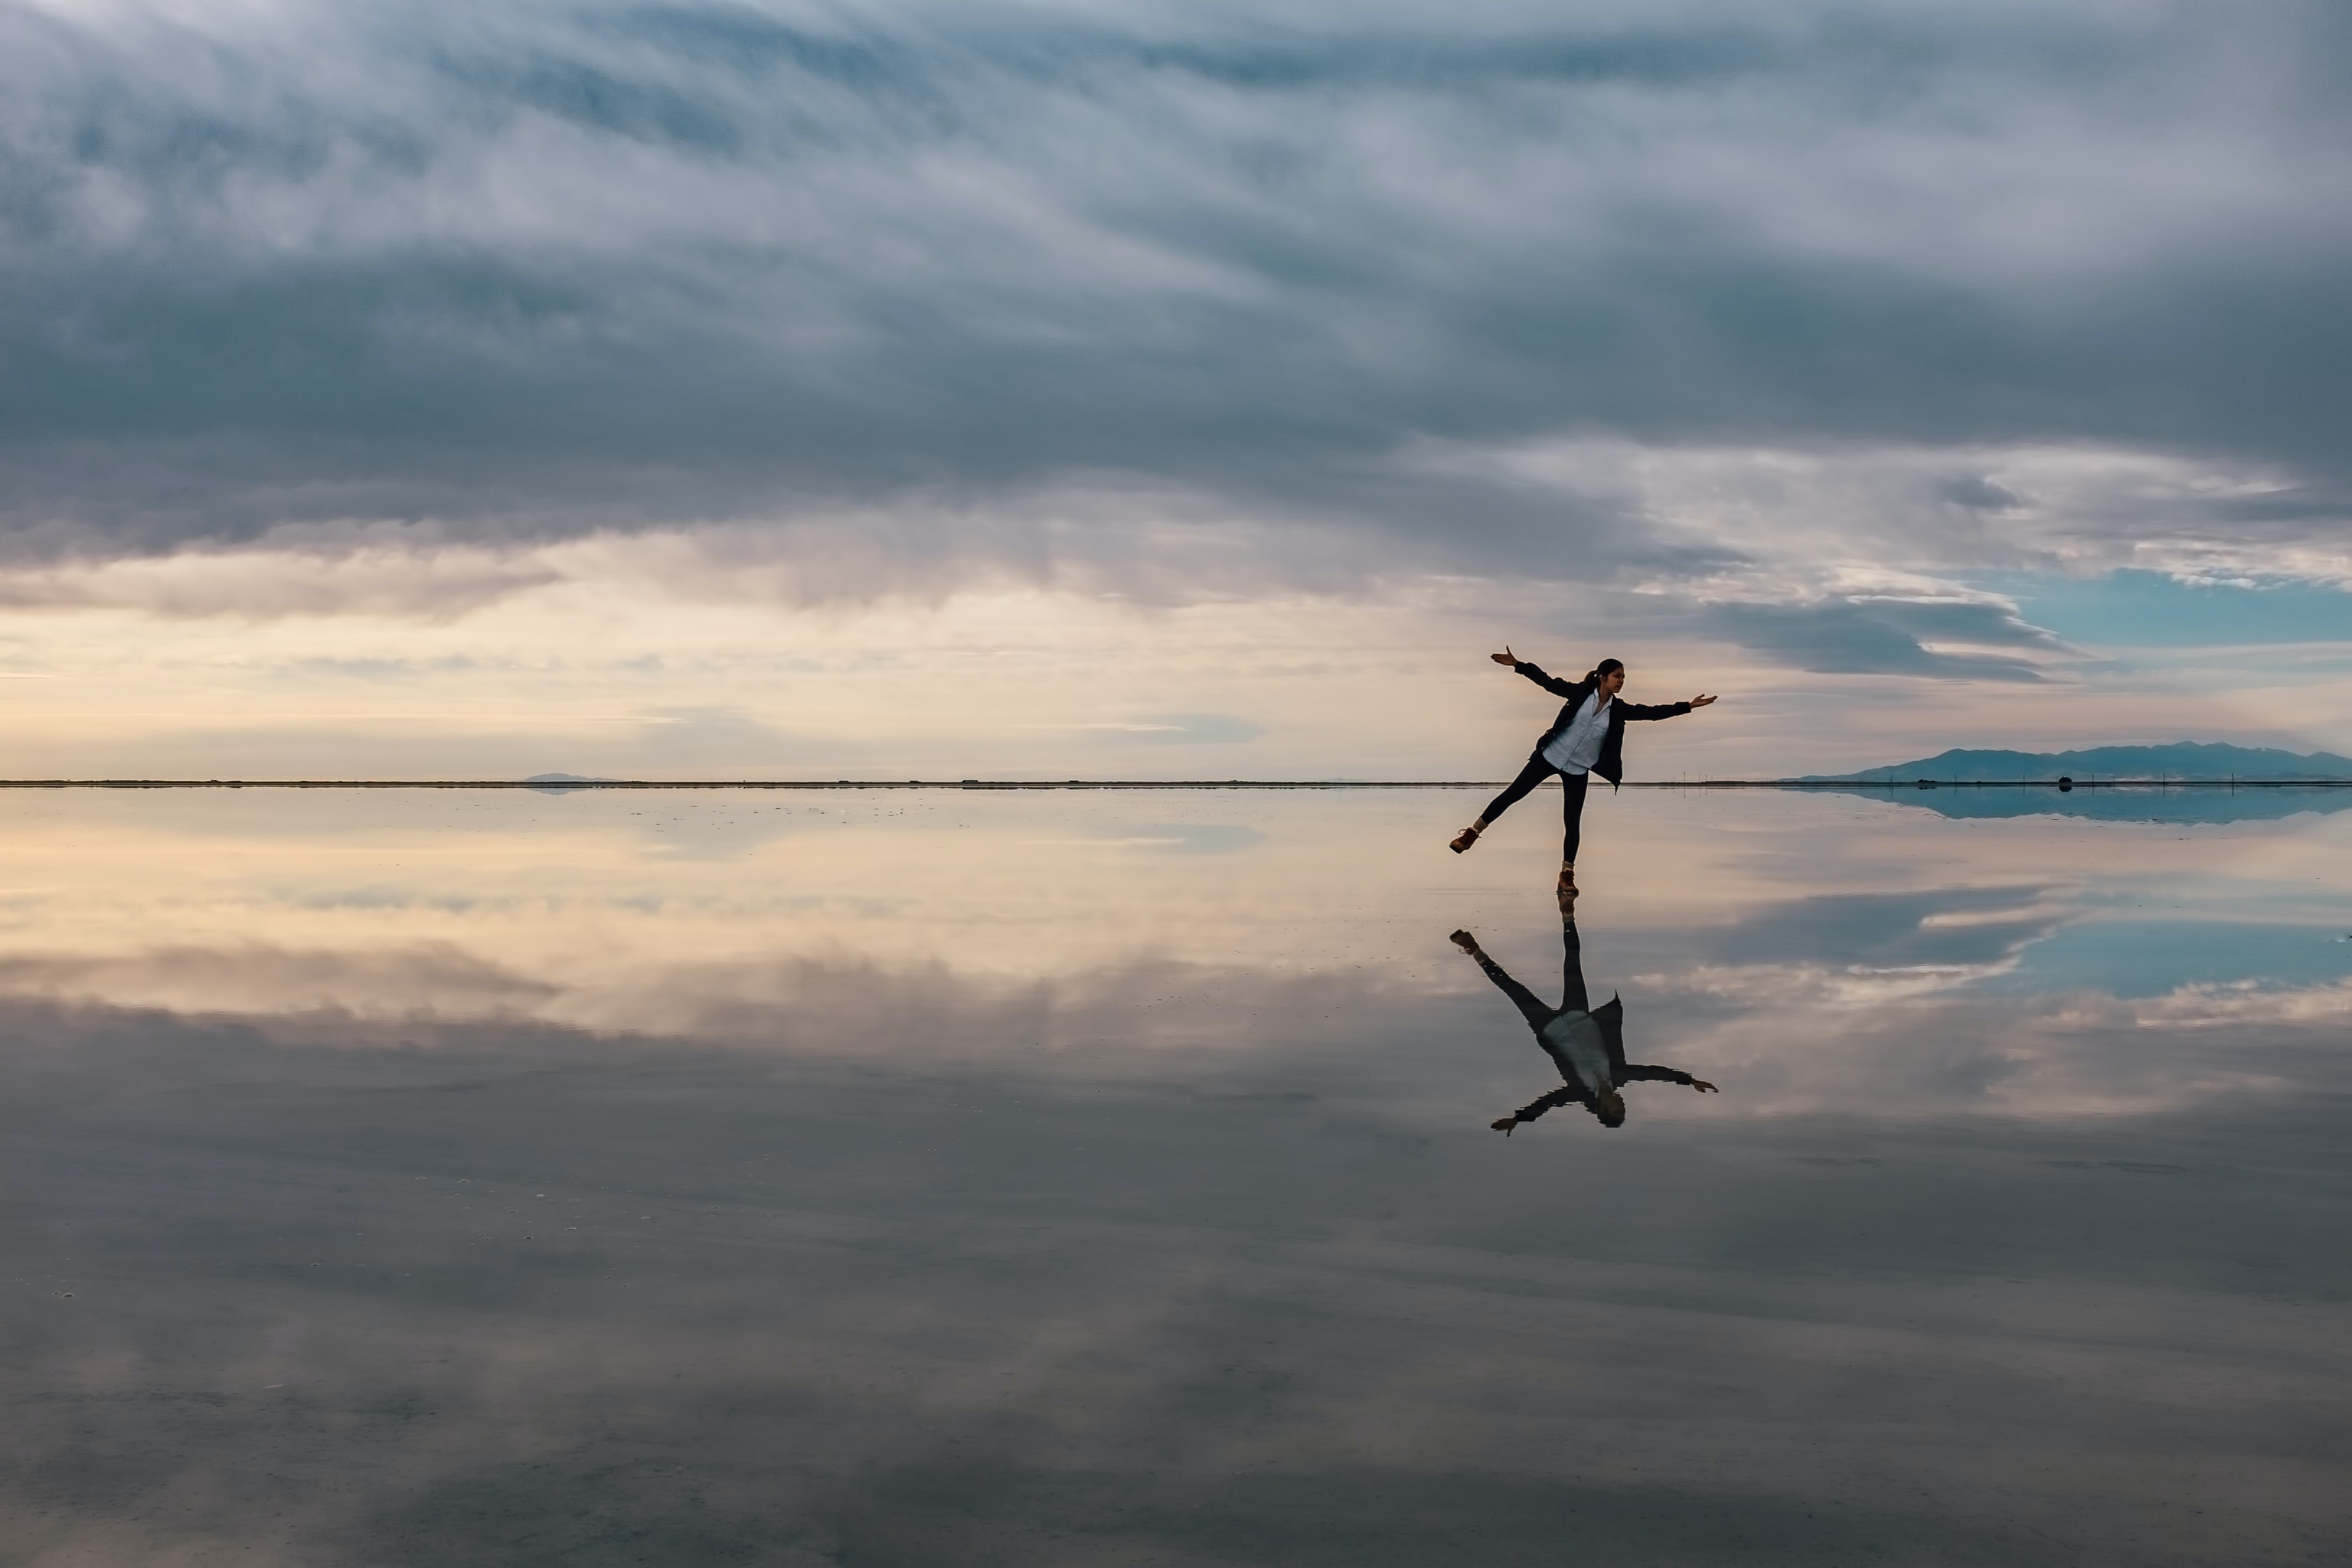 Wide angle shot of a person dancing in a seascape reflecting the sky.